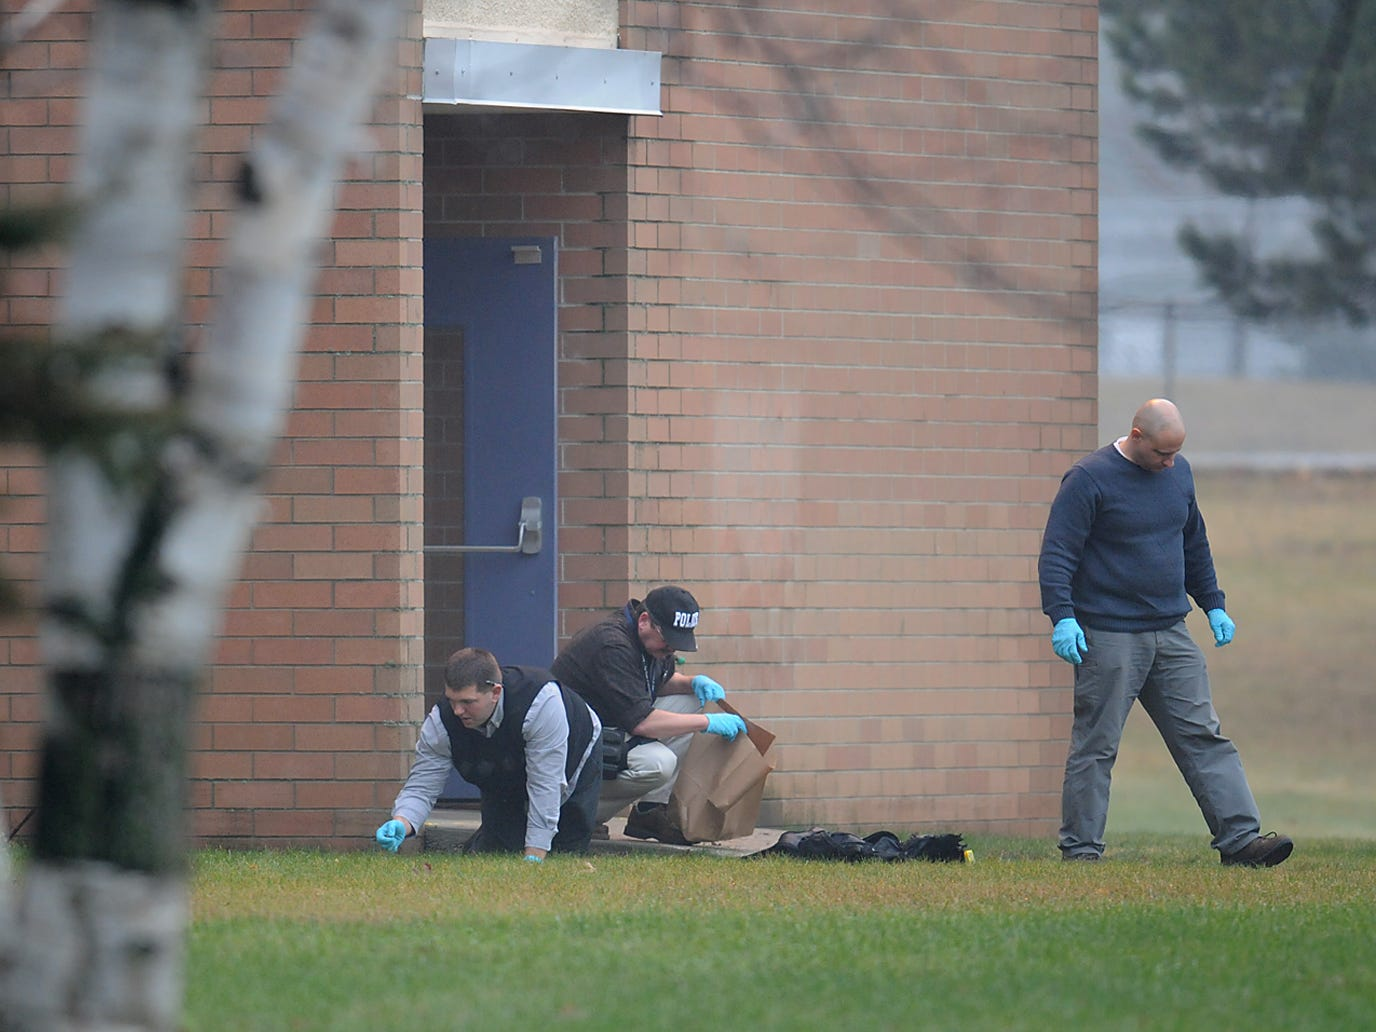 Police investigators gather, photograph and bag evidence outside a side entrance to Marinette High School just after 8:00 a.m. on Nov. 30, 2010 following a hostage incident on Nov. 29 where a 15-year-old male held a classroom of students and a teacher in a classroomin Marinette, Wis., until police heard gunshots from the classroom, entered and the suspect shot himself with a handgun.  Photo by Corey Wilson/Press-Gazette